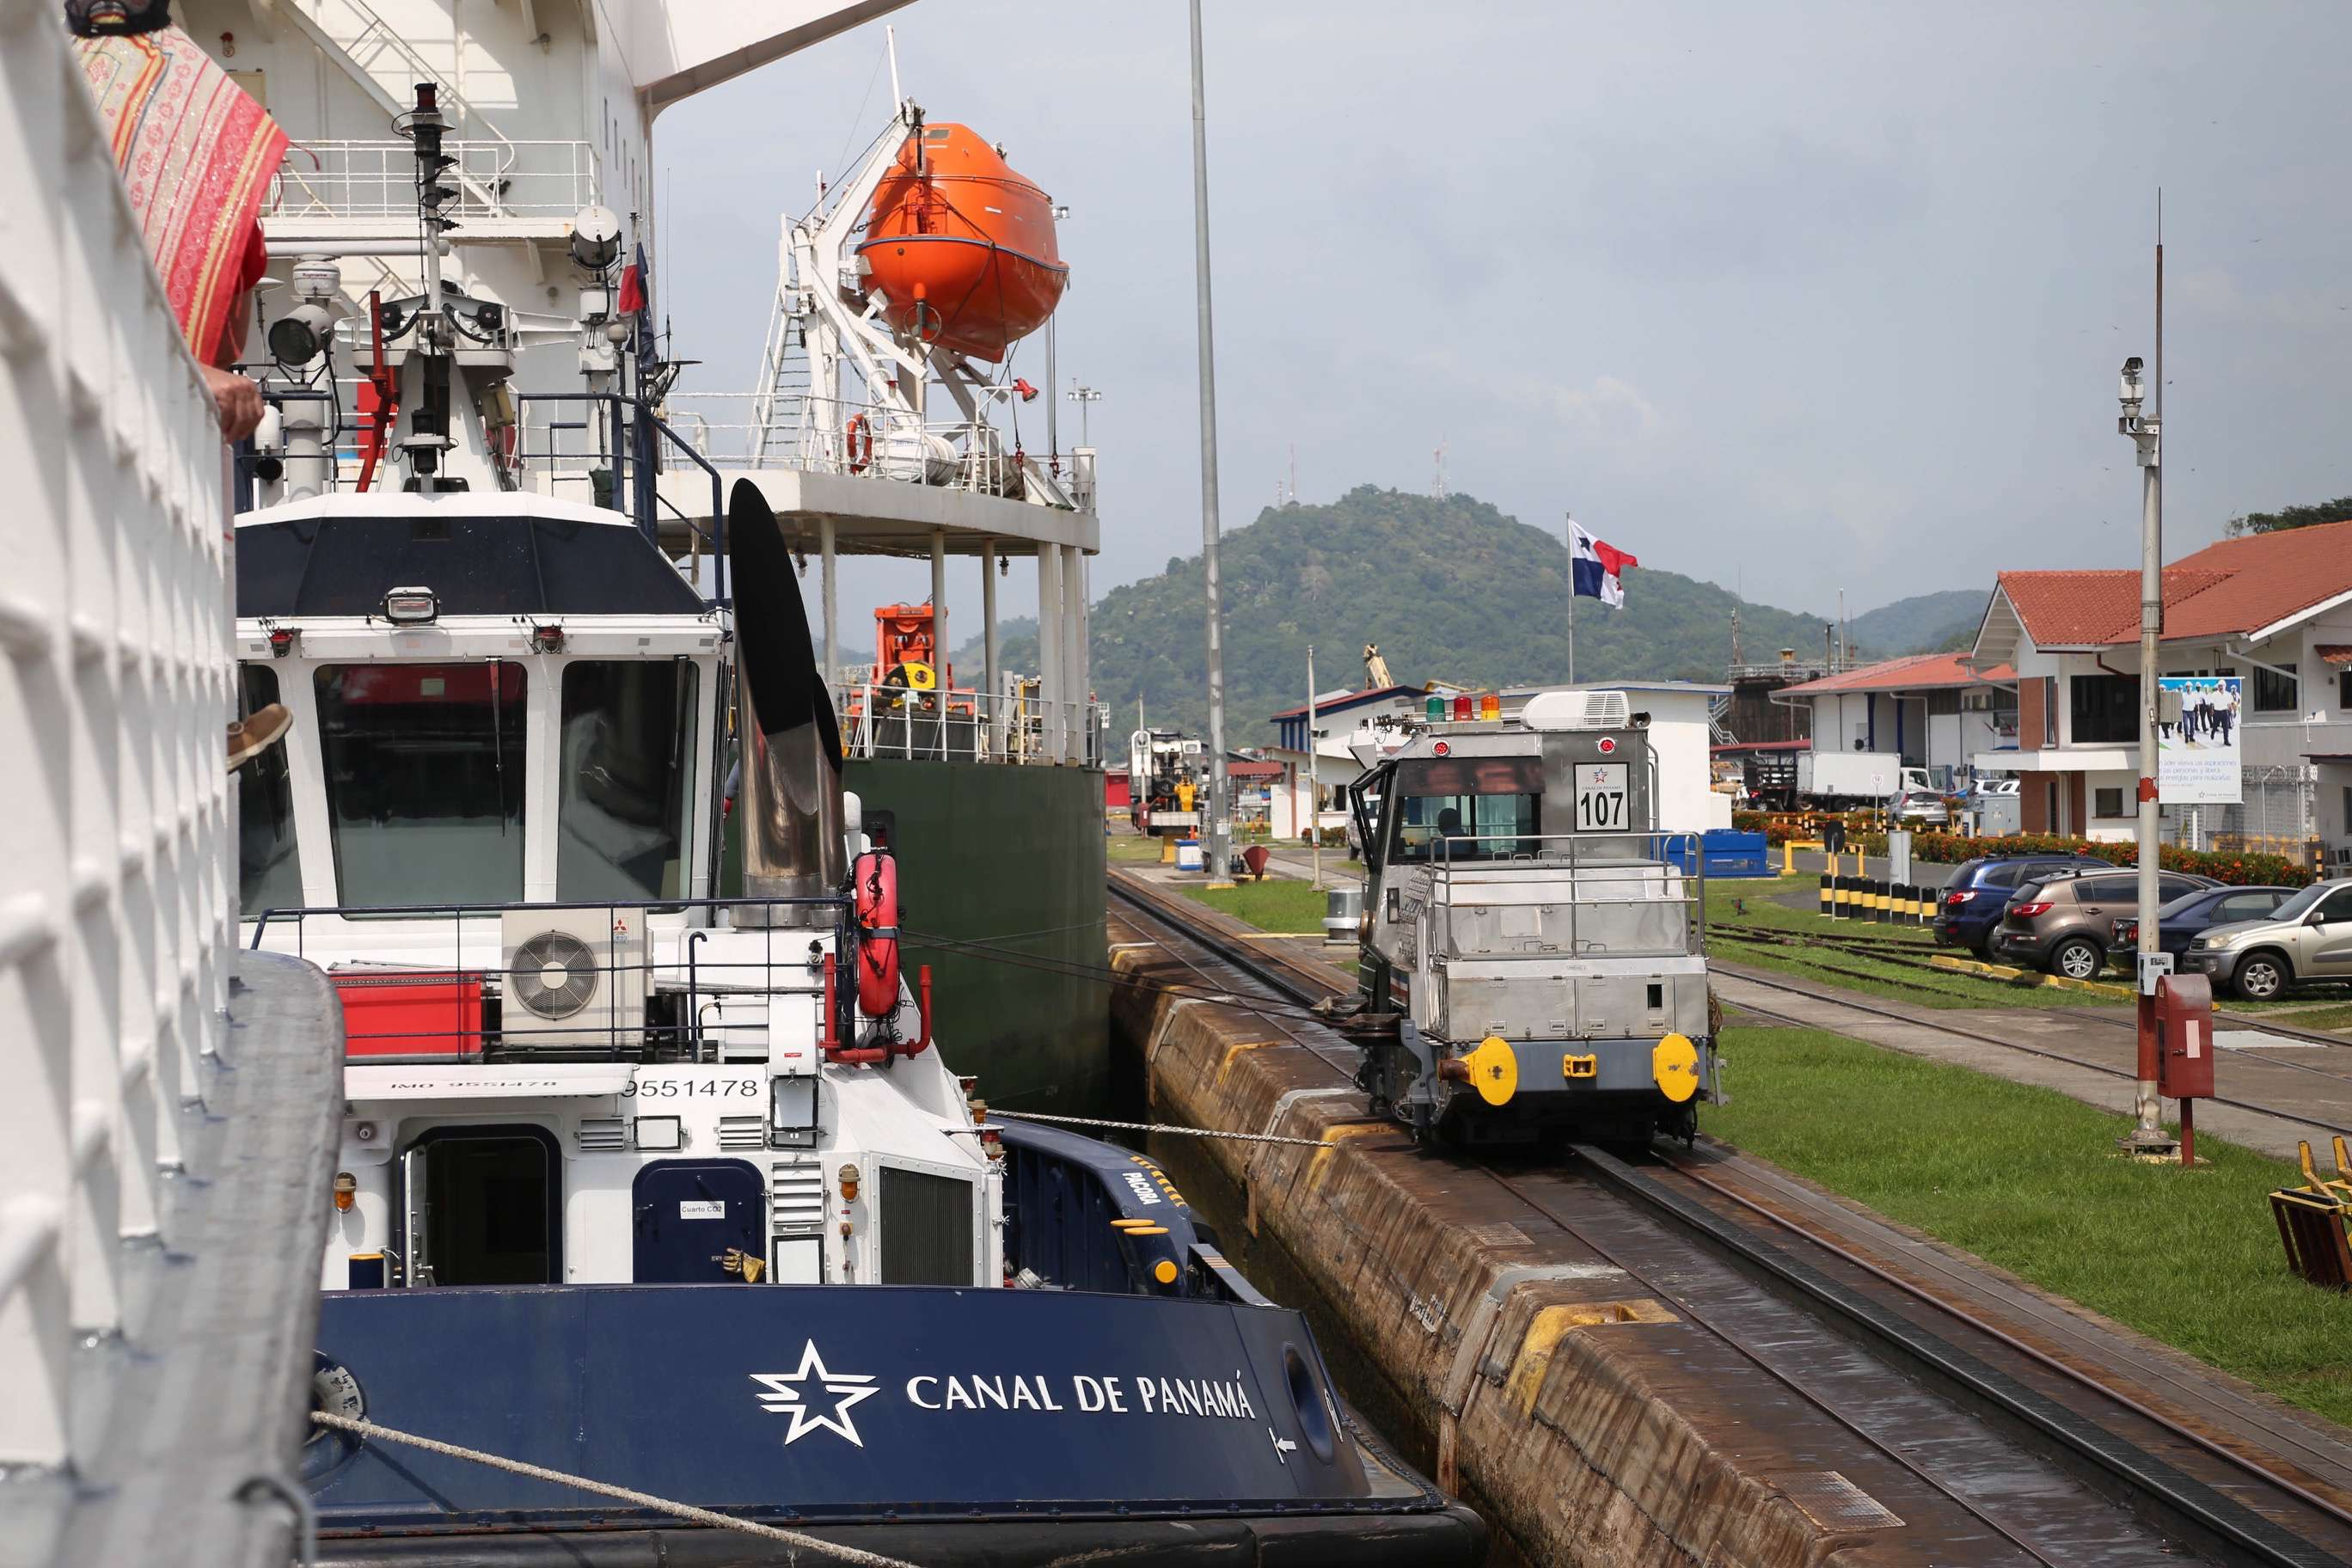 Locomotives, one at the bow, the other at the stern, run along side each side of the locks at the Panama Canal to carefully transport larger vessels up, down and through the six locks required to transit the entire canal.